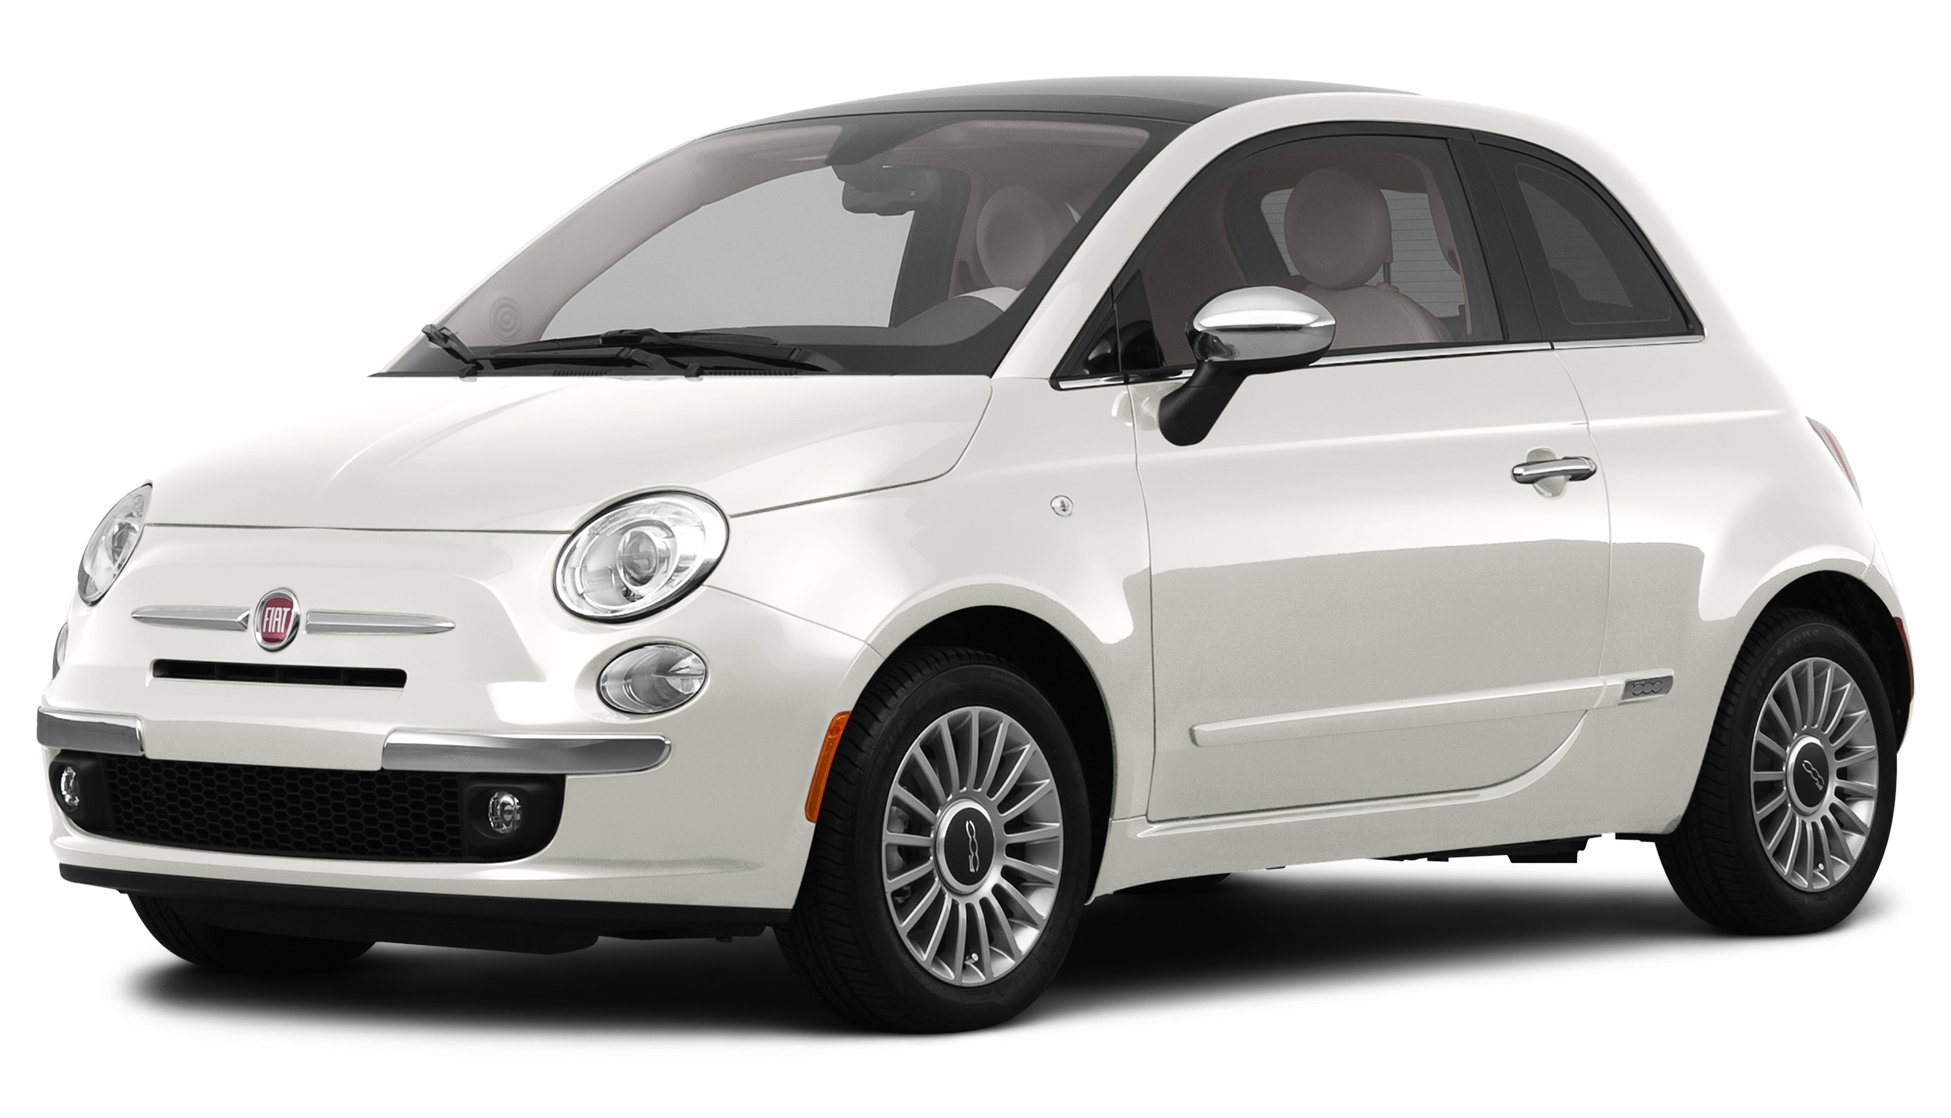 2012 Fiat 500 Reviews Images And Specs Vehicles 126 Alternator Wiring Diagram Abarth 2 Door Hatchback